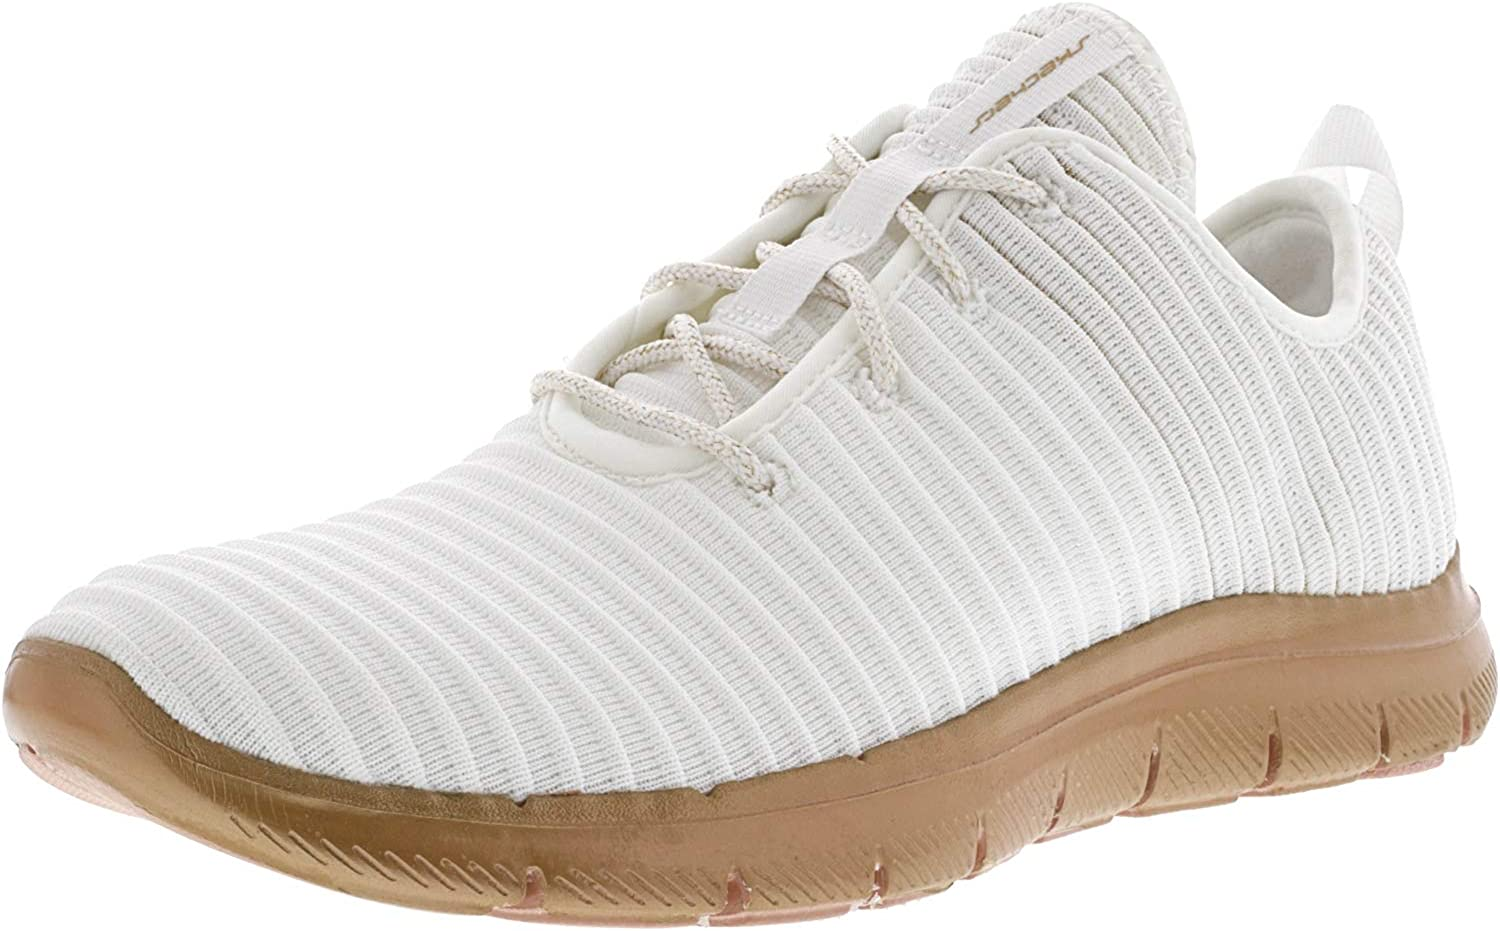 Skechers Women's Flex Appeal 2.0 - Chroma color Ankle-High Fabric Walking shoes